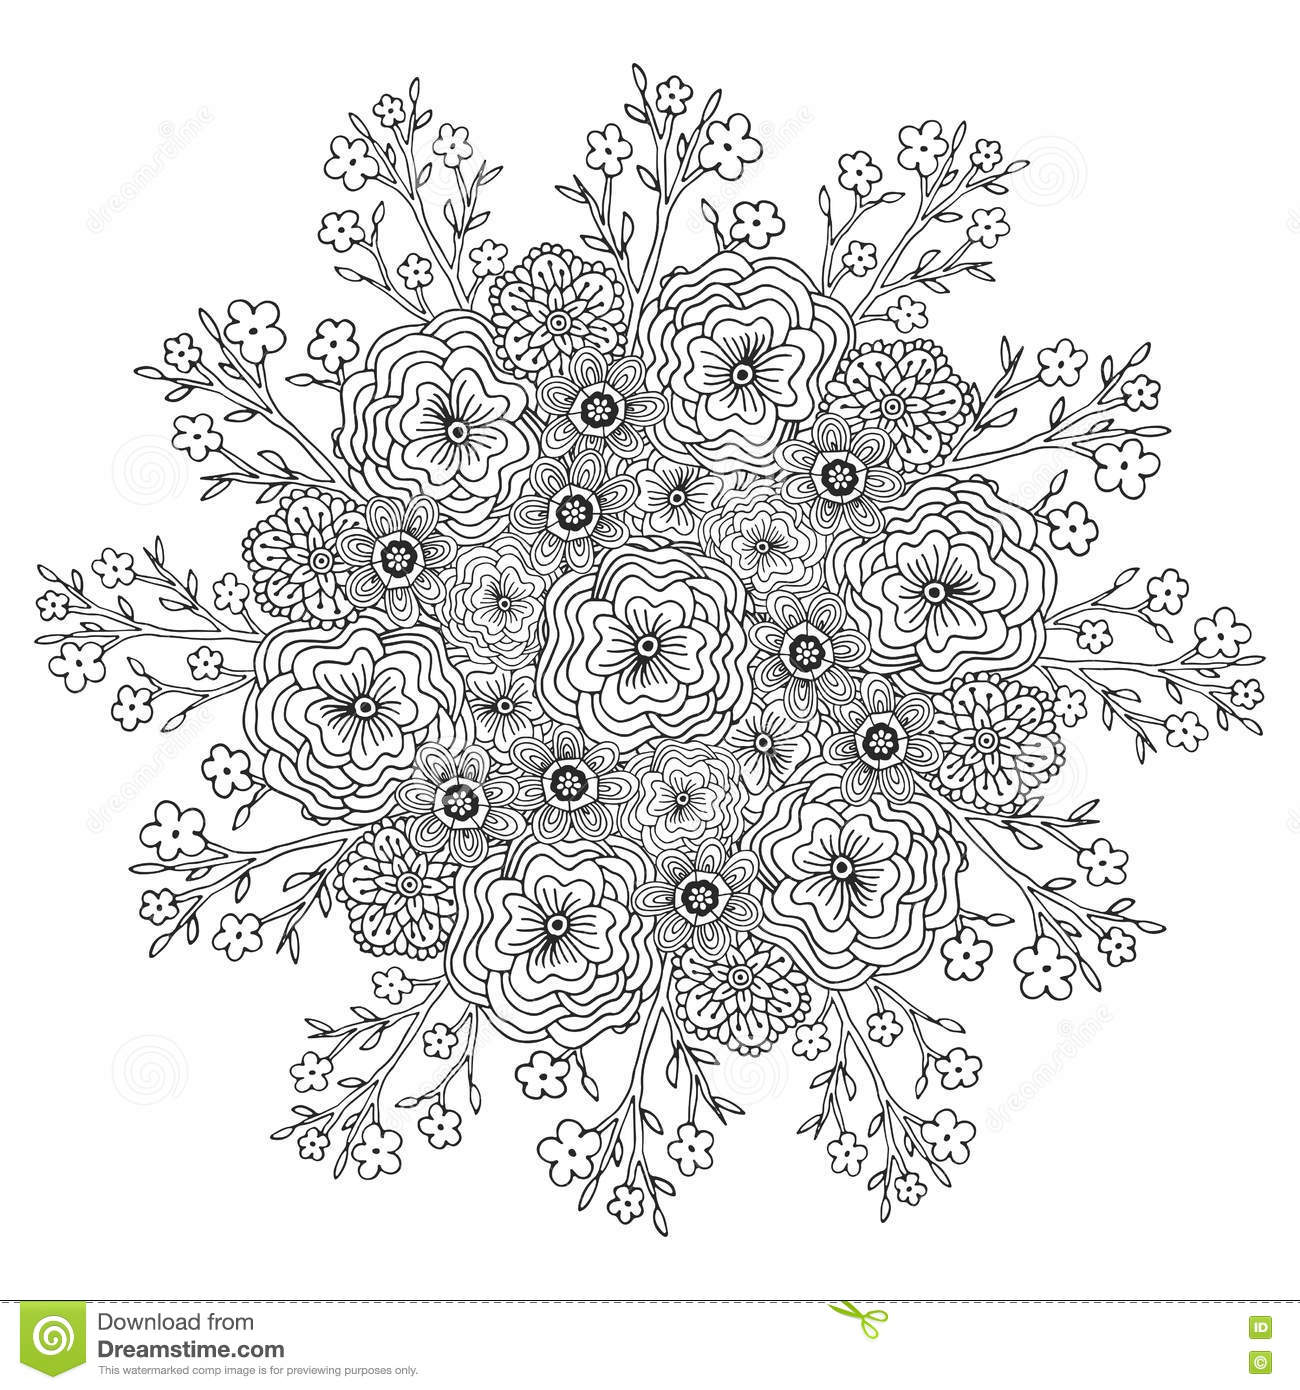 Download Vector Mandala With Flowers Pattern Adult Coloring Book Page Floral Design For Decoration